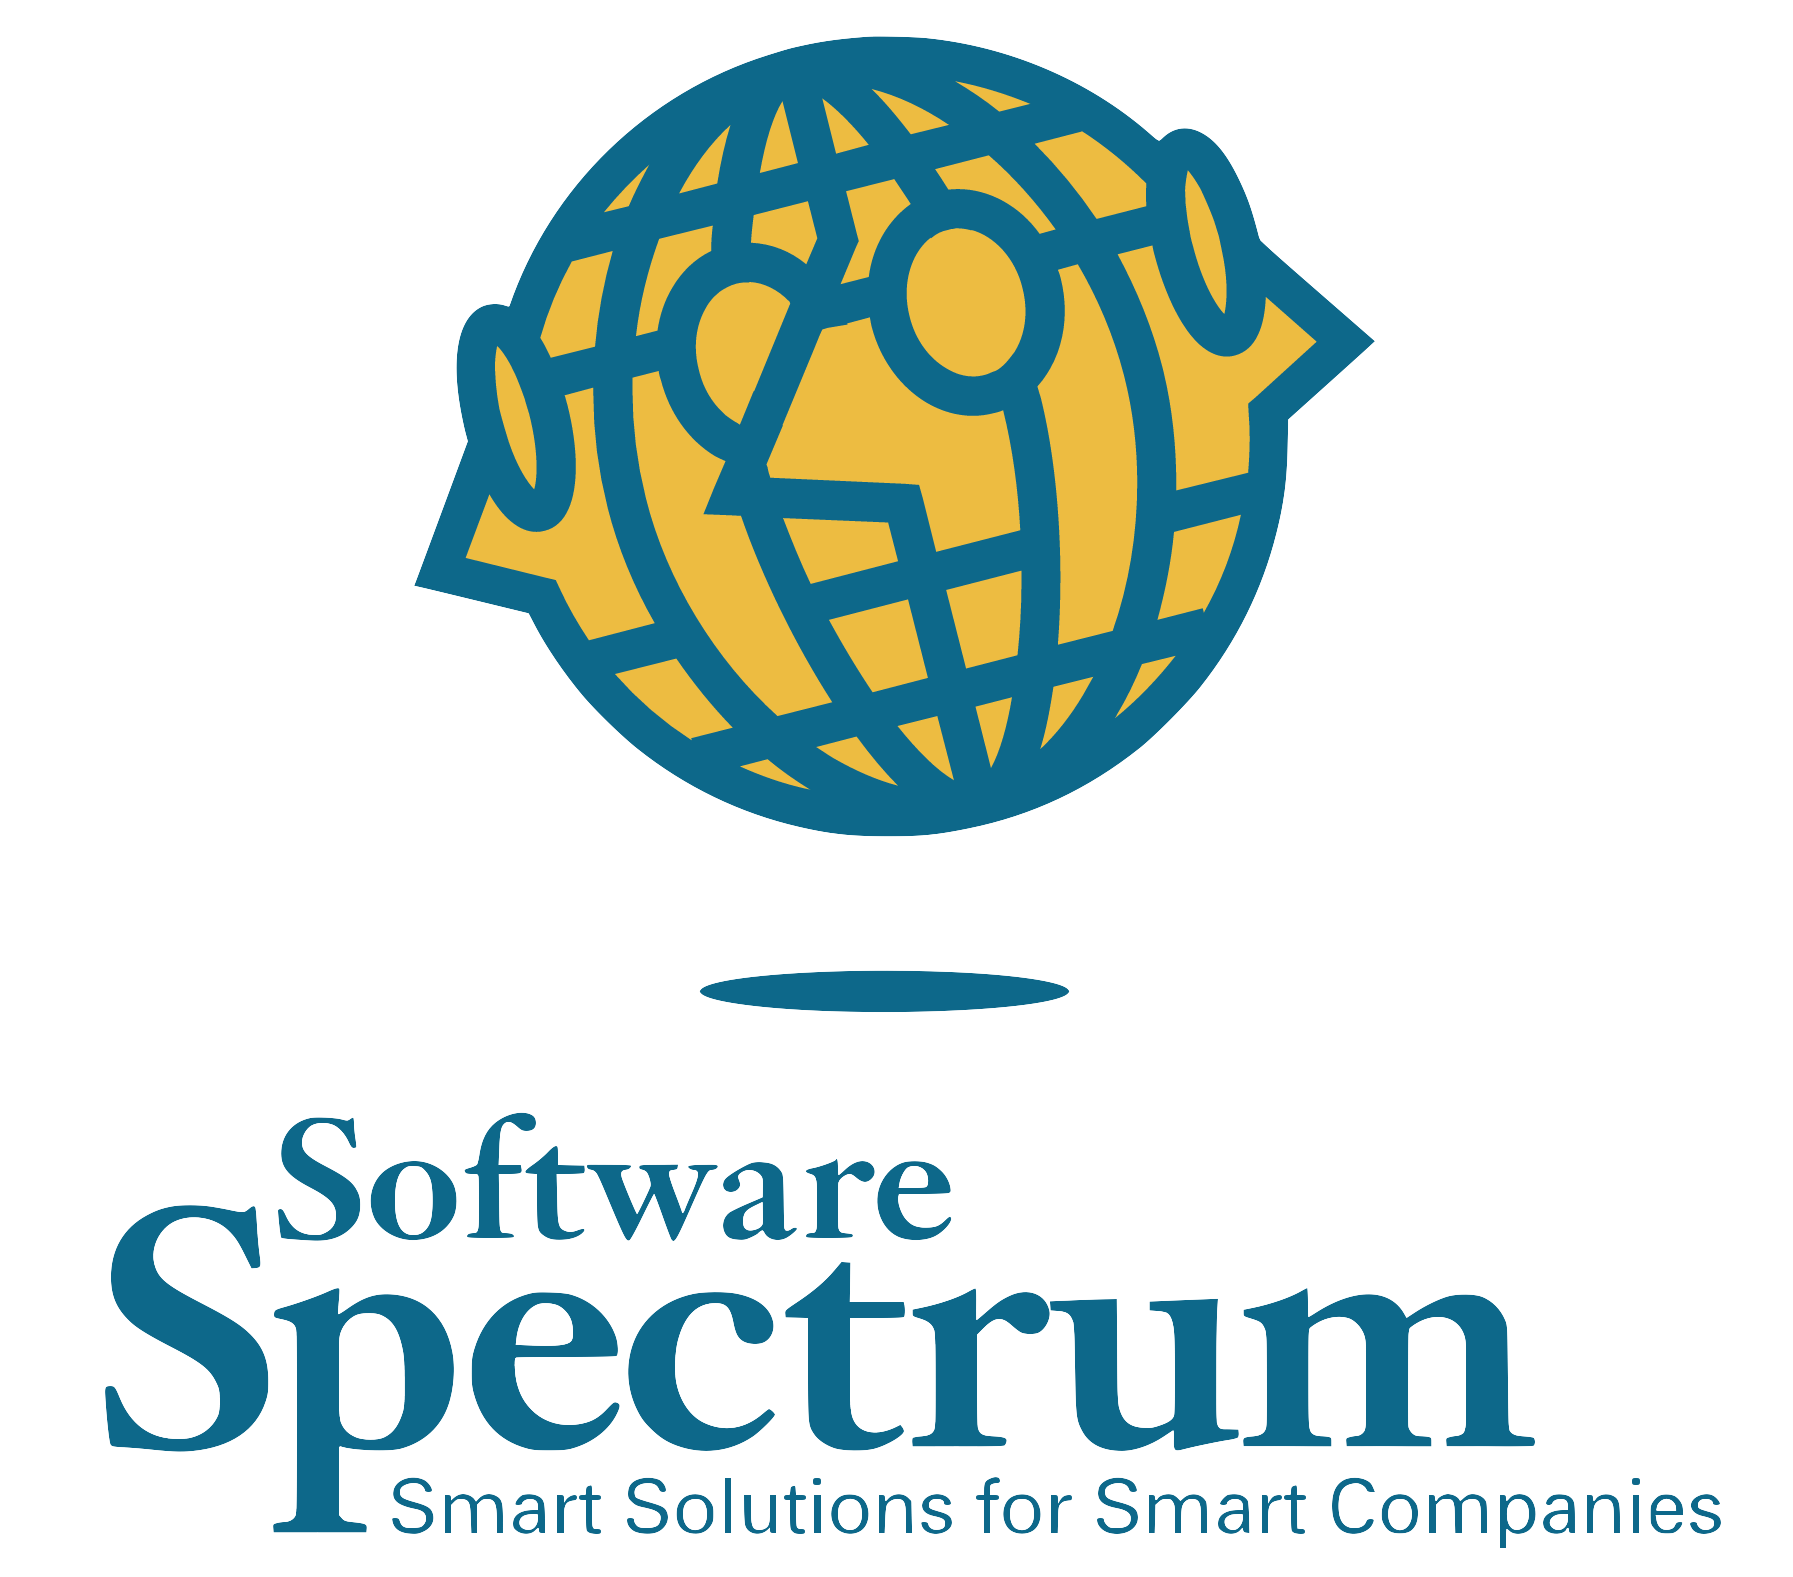 Software Spectrum logo.png